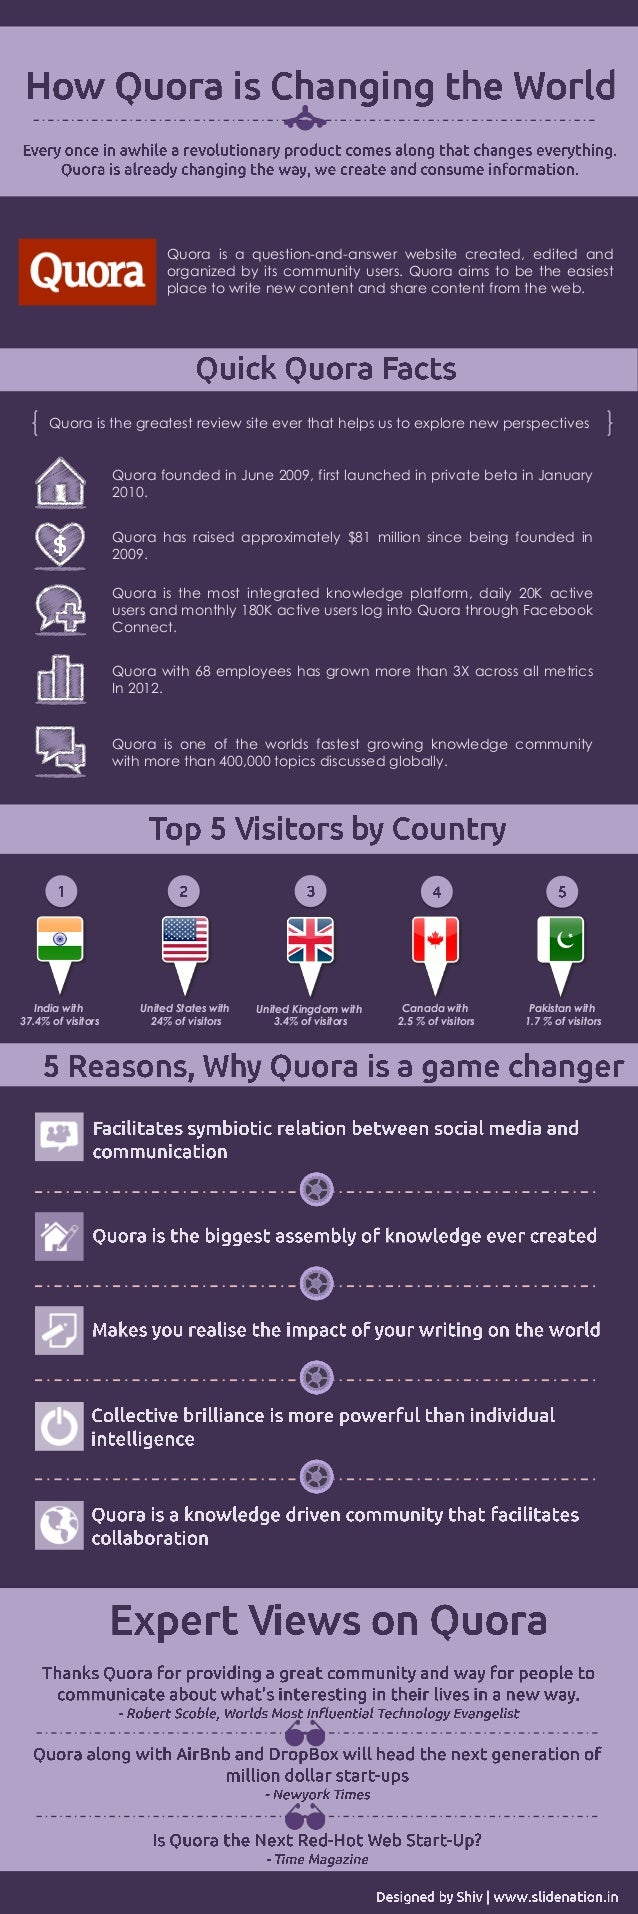 How quora changing the world